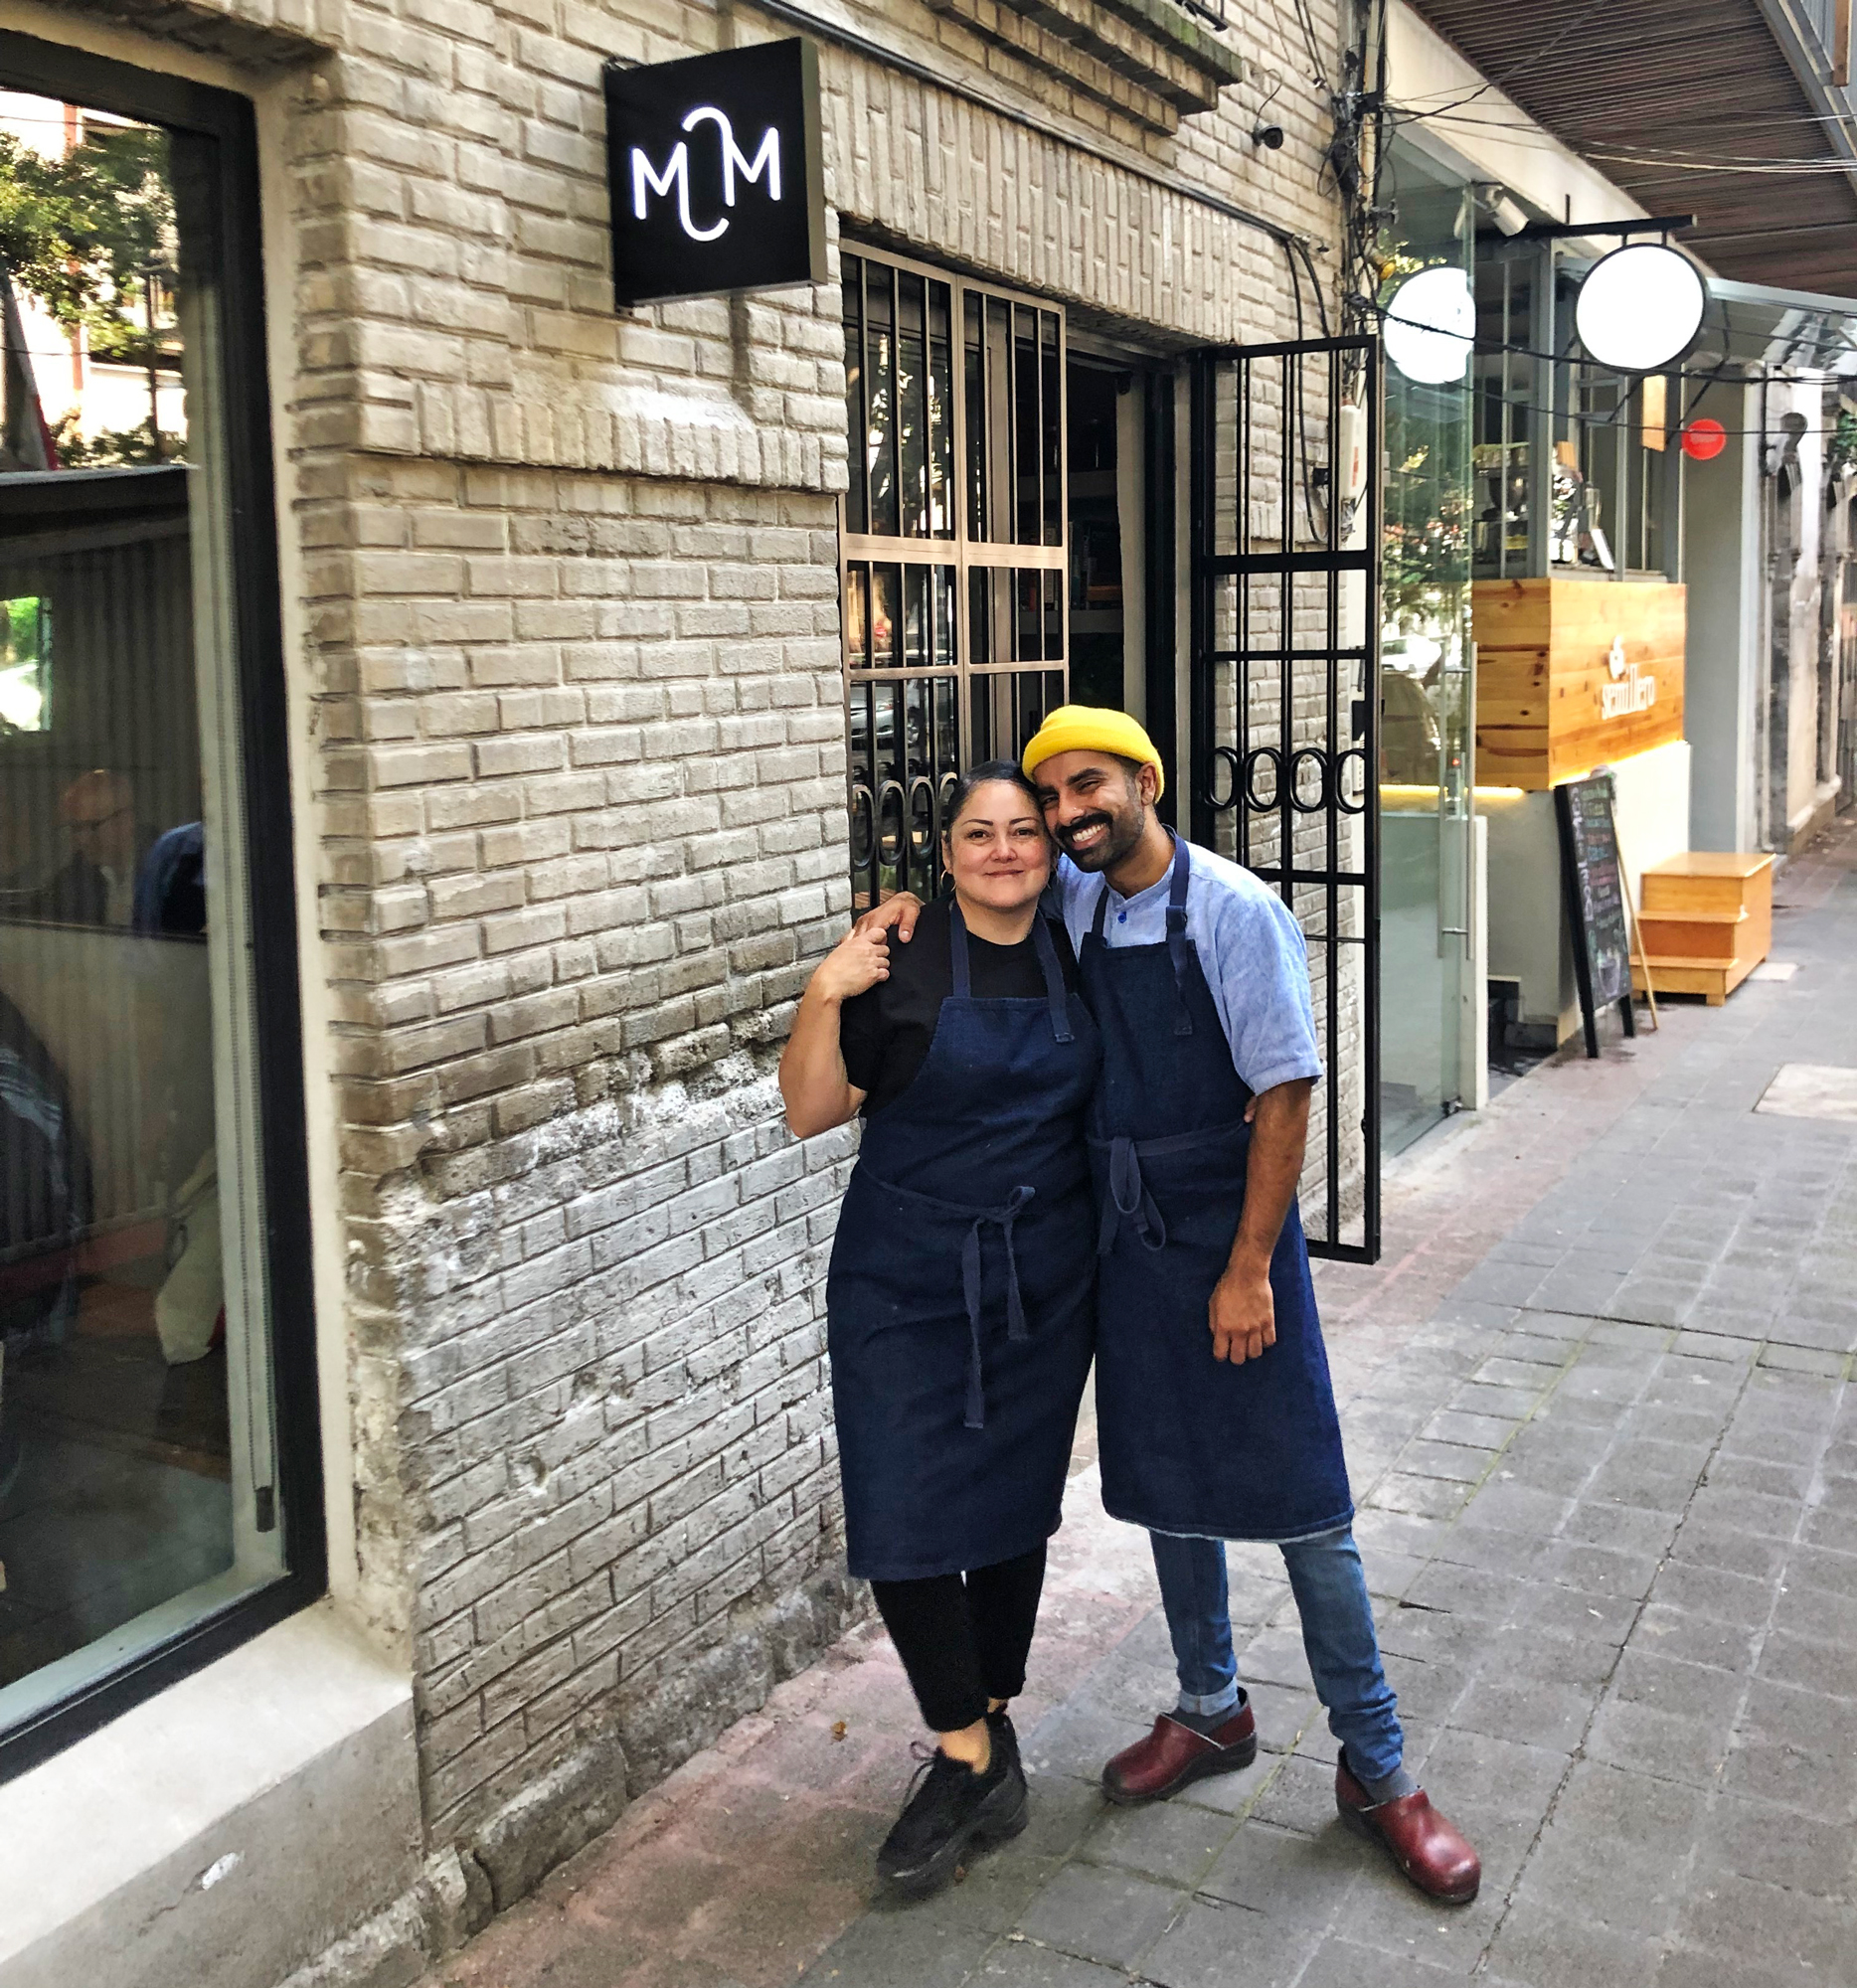 Chef Norma Listman and Chef Saqib Keval